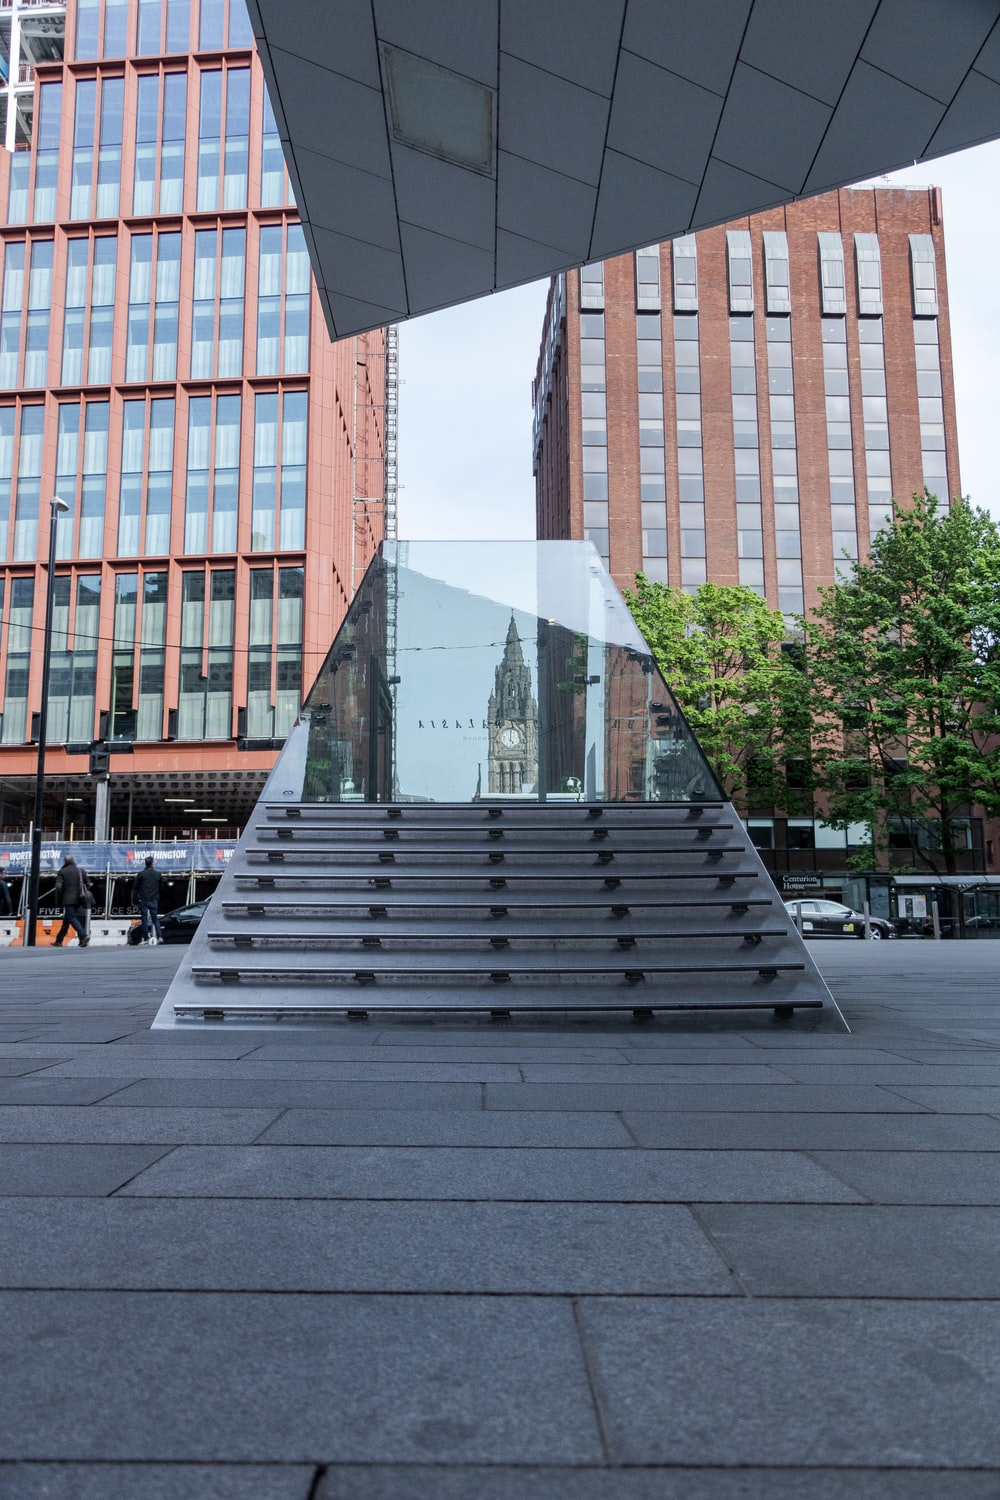 stairs with clear glass case near buildings